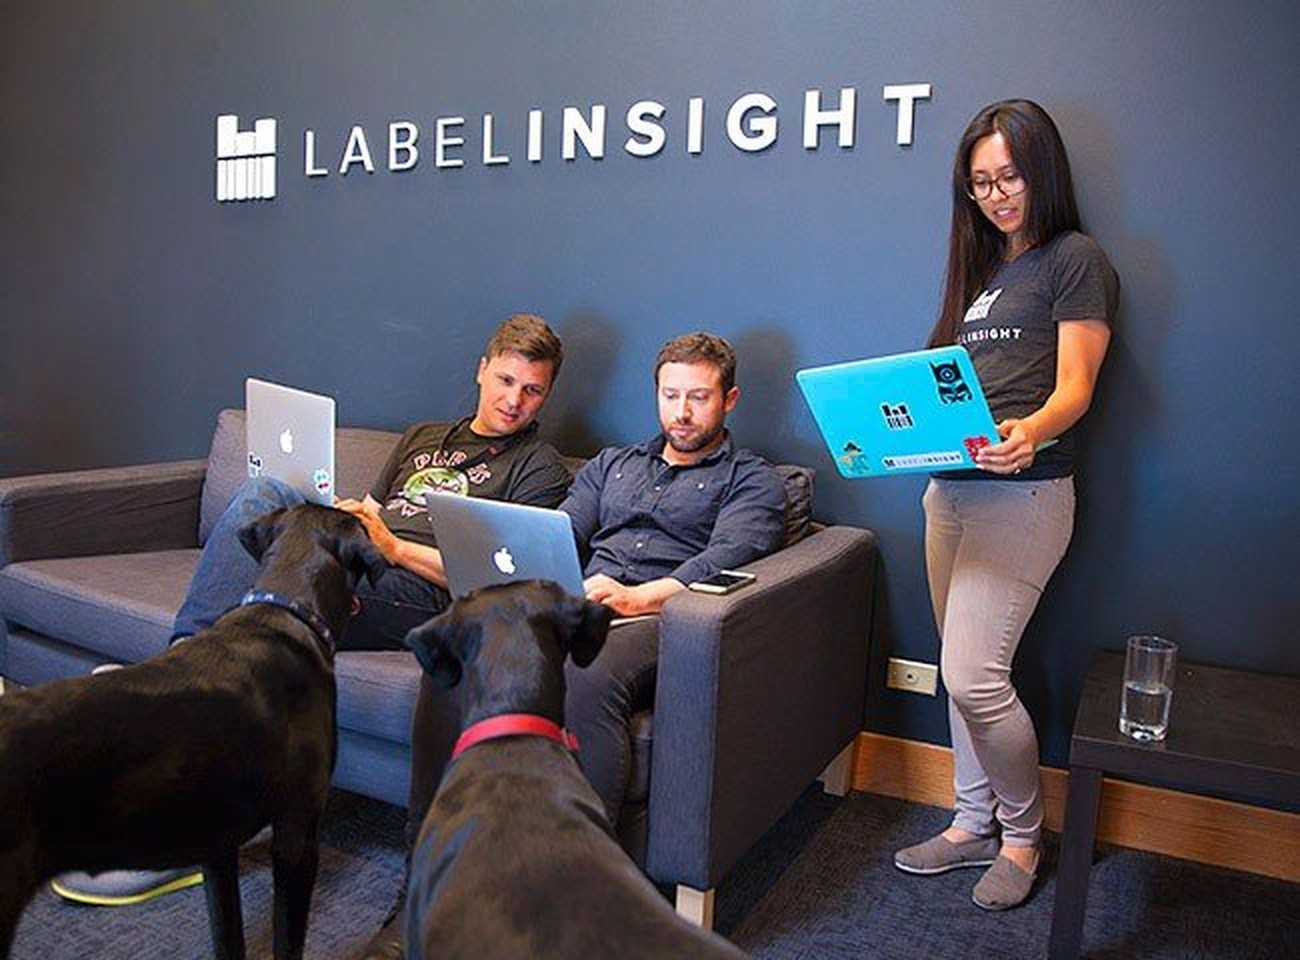 Label Insight Careers